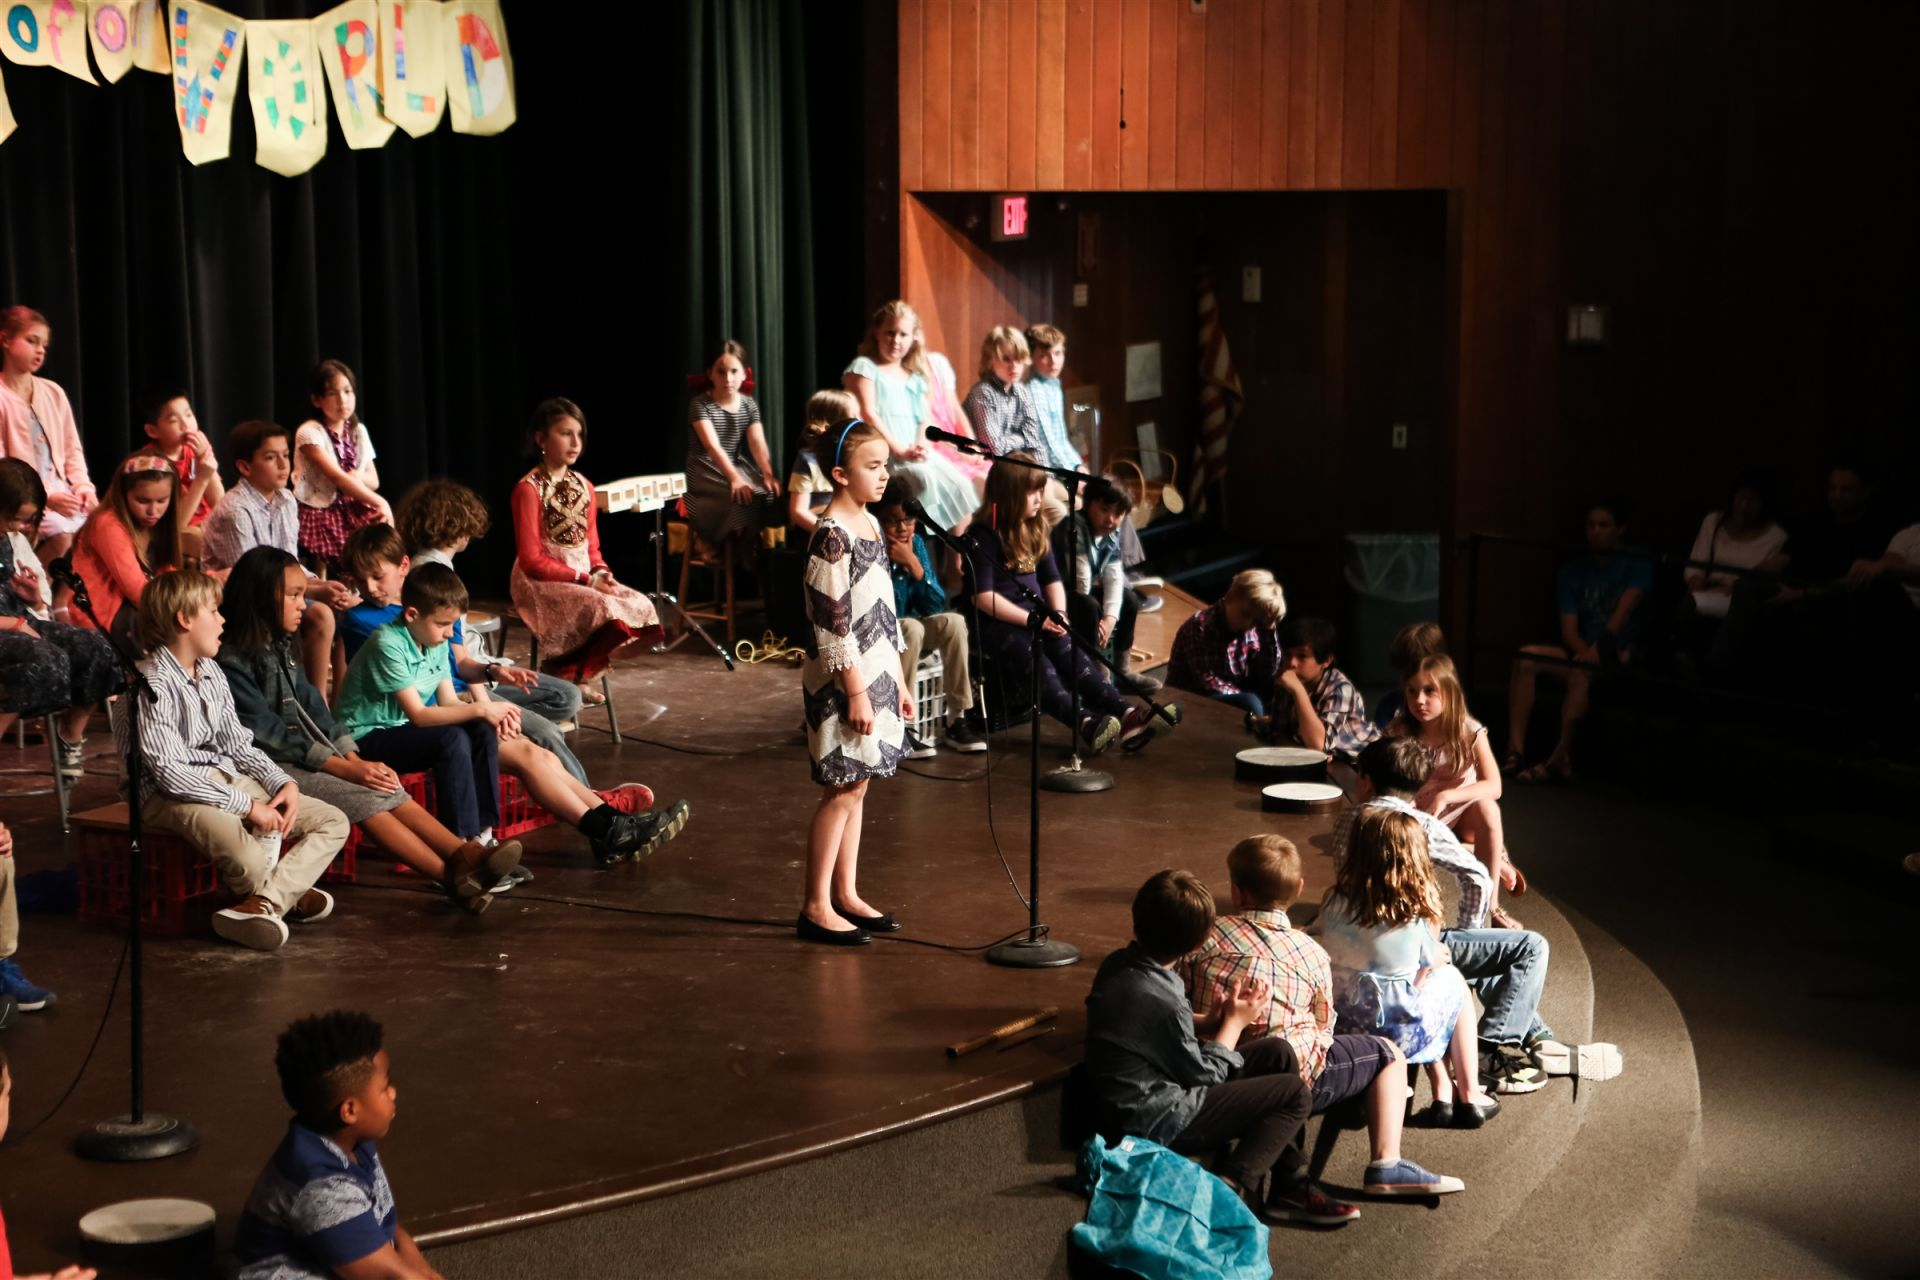 After studying poems, third grade students were encouraged not only to write their own, but also present them on stage! Starting in preschool, our teachers provide multiple opportunities for students to step out of their comfort zone in order to build confidence and showcase academic achievement. Welcome to Third Grade Poetry Night!